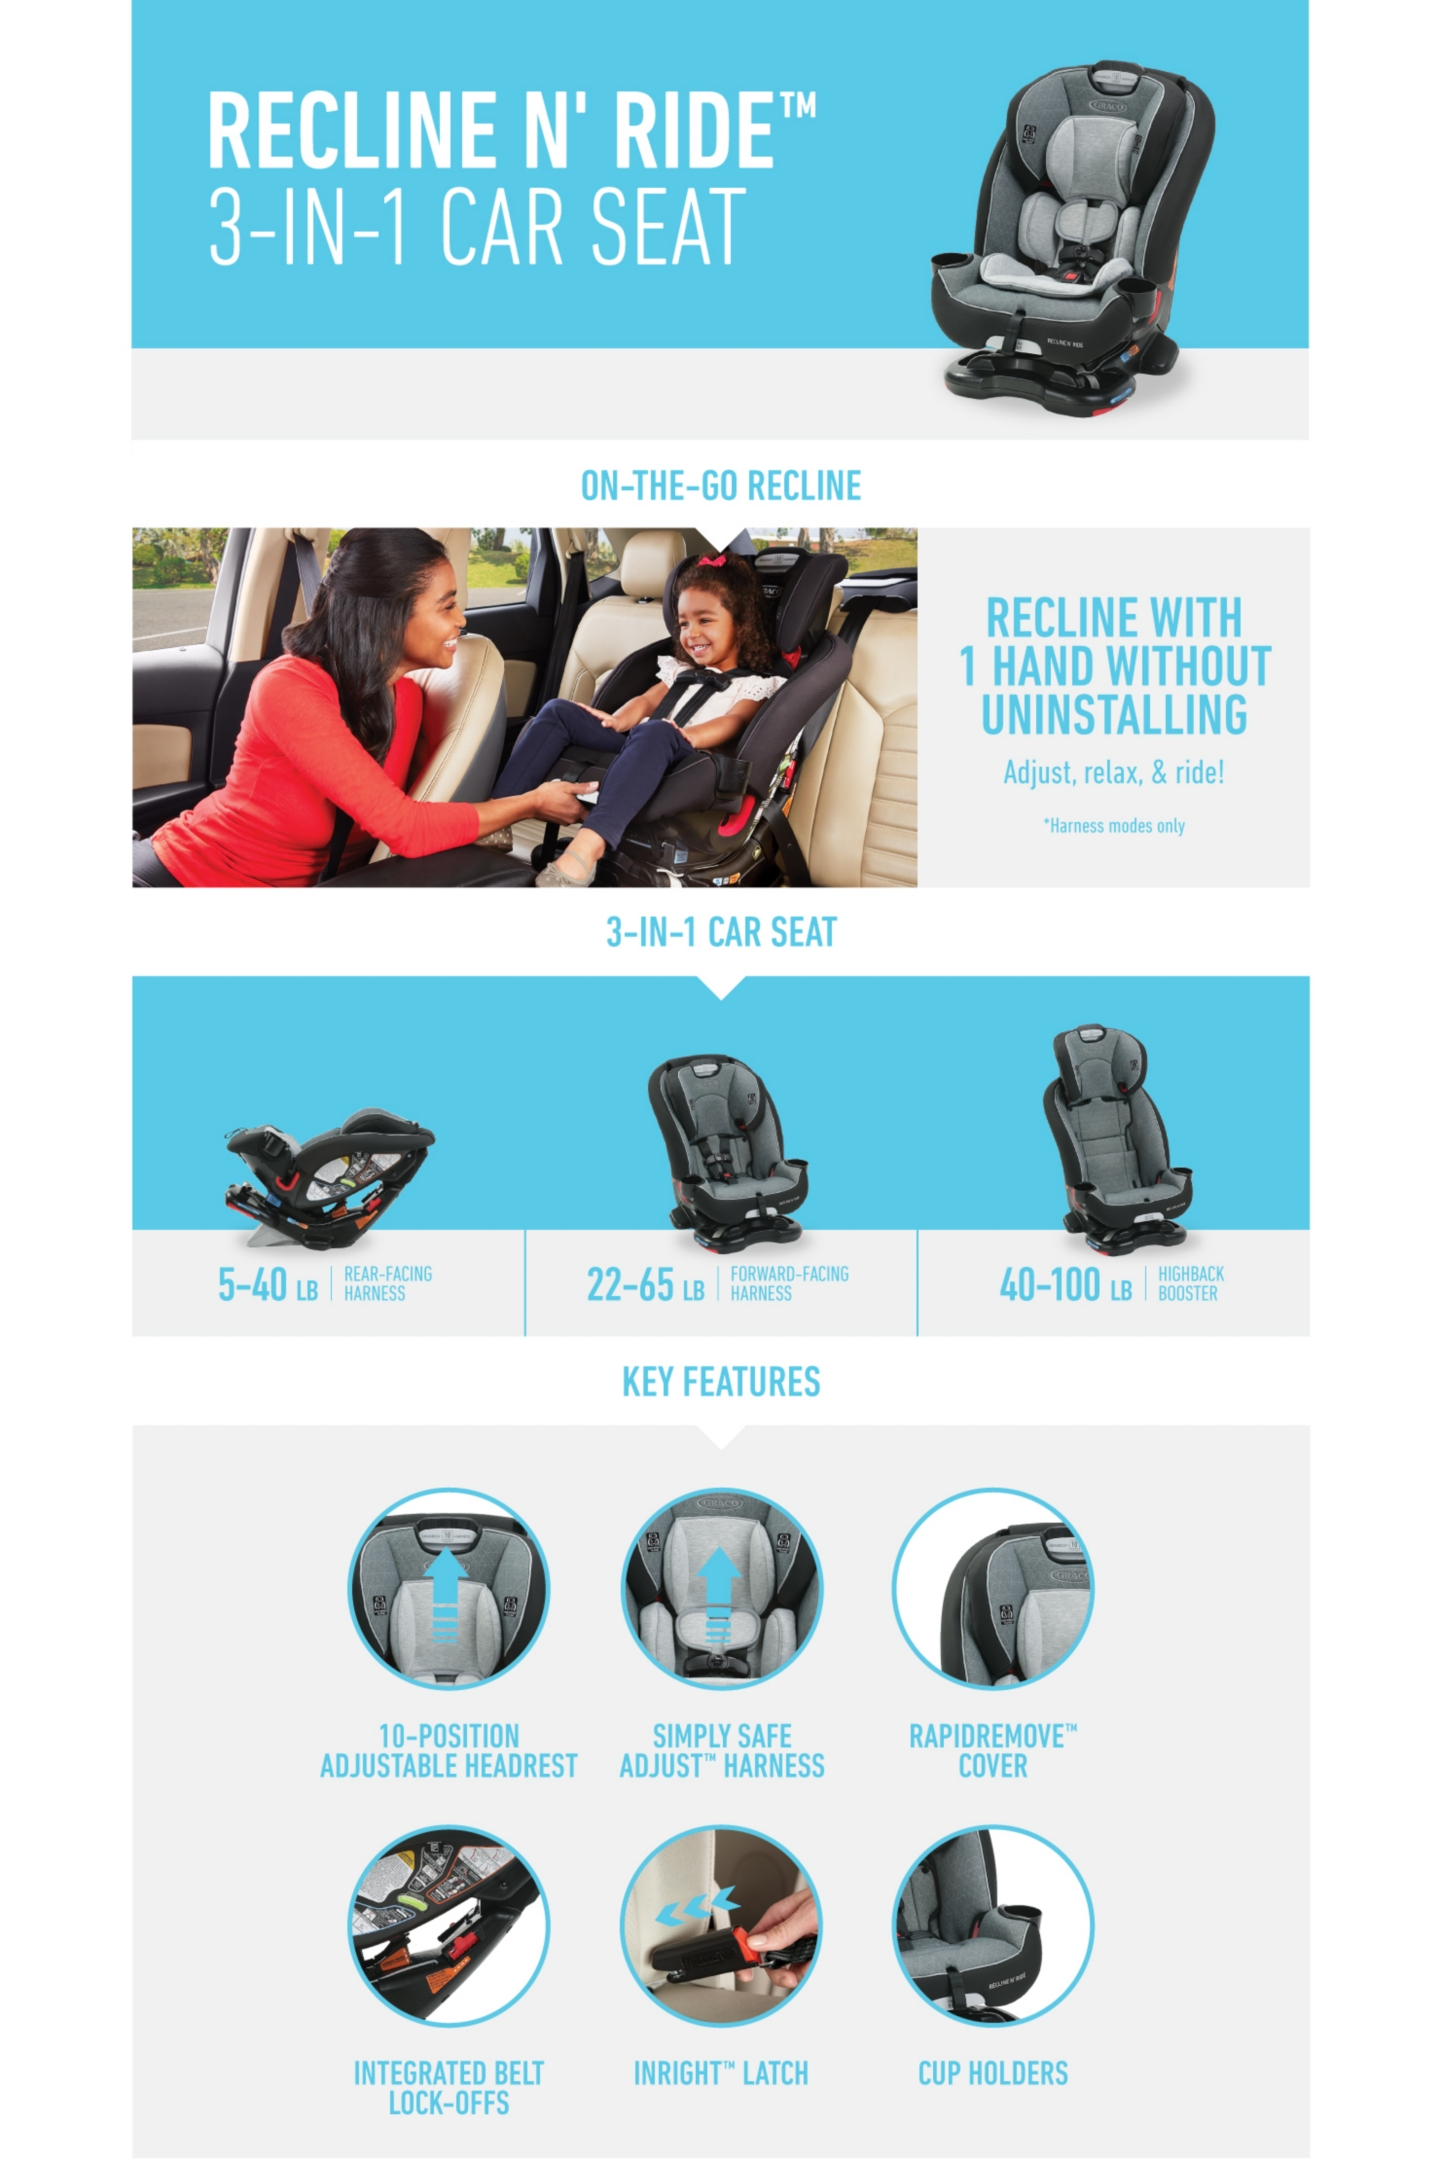 Recline'N Ride 3-in-1 CarSeat